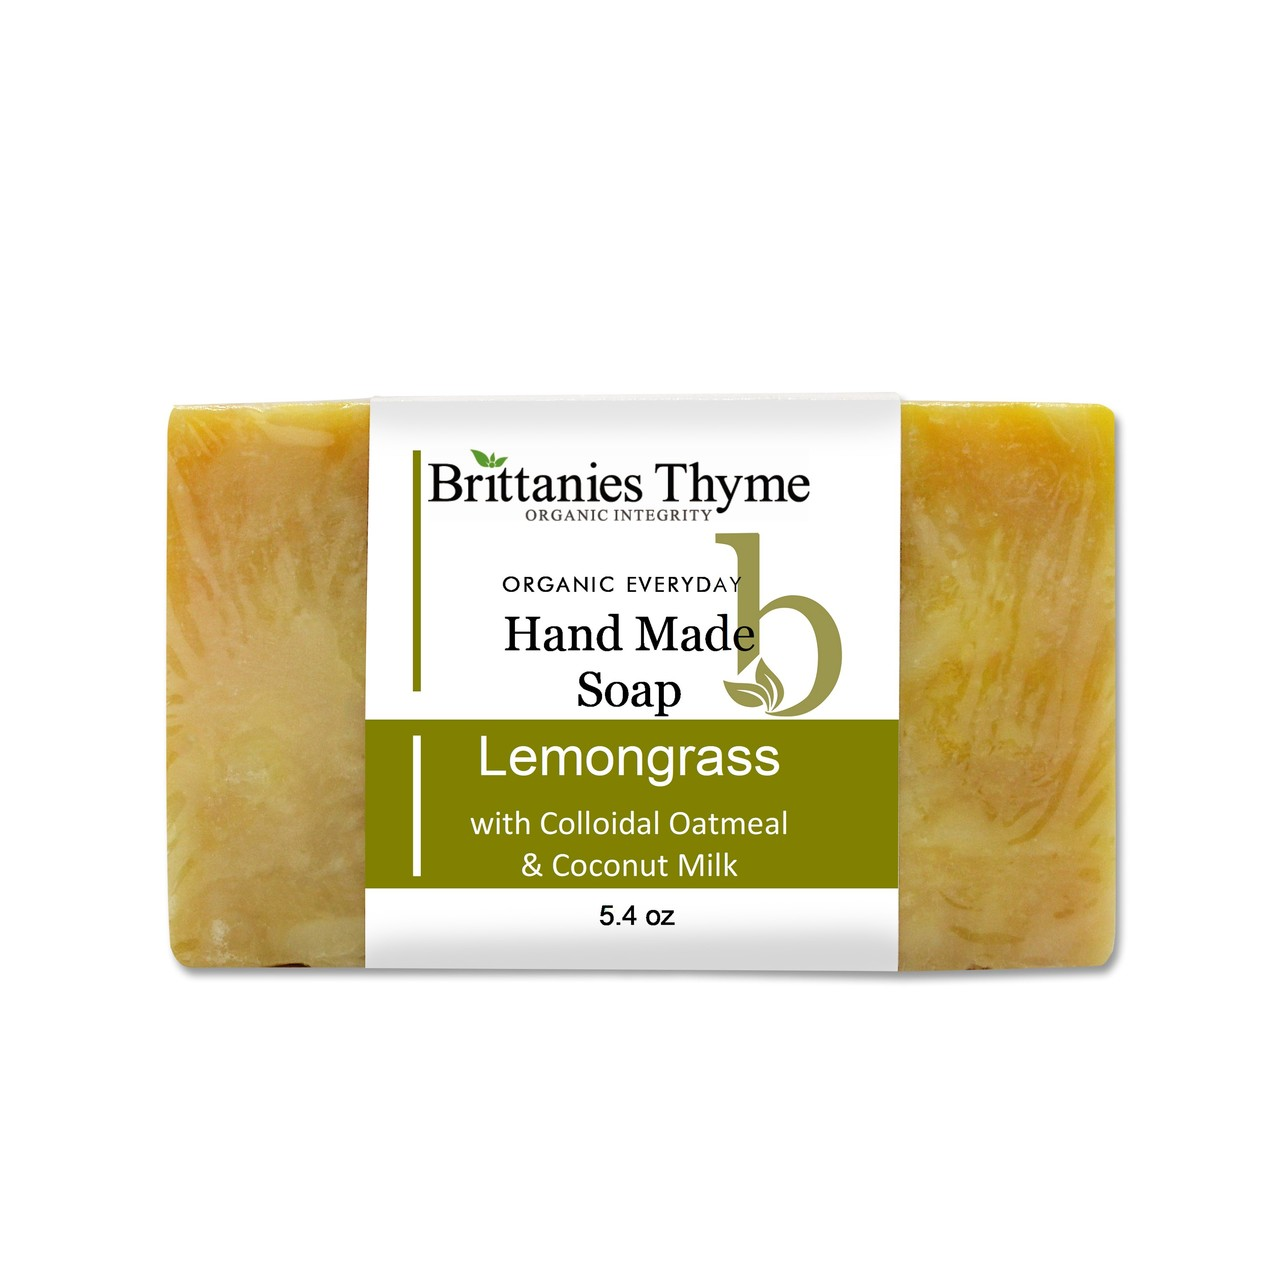 Hand crafted. Made with Organic Ingredients. Lemongrass oil provides a clean, energizing aroma. Anti-aging, wrinkle reducing. Ingredients help relieve symptoms of eczema, psoriasis, rashes and dry, itchy skin.